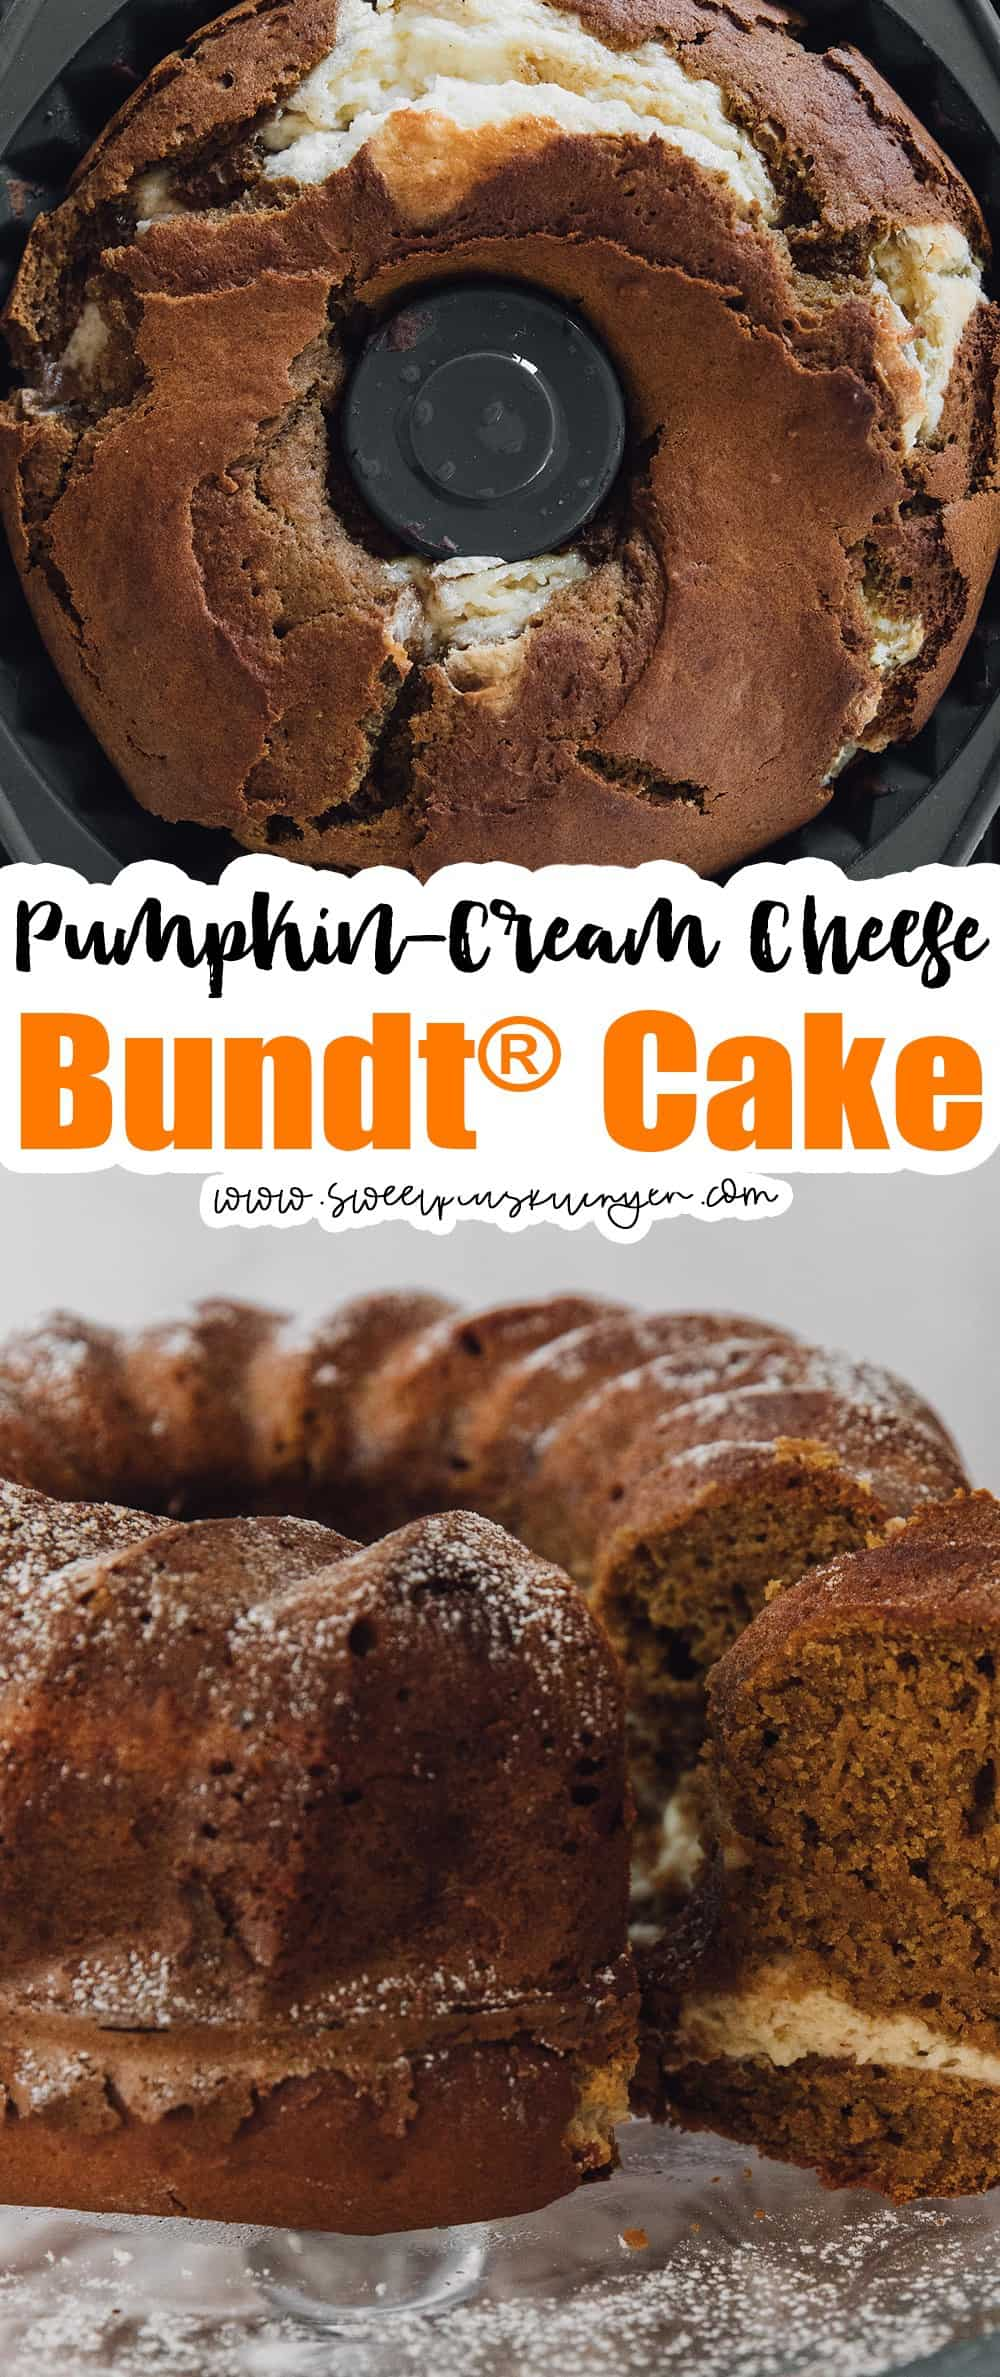 Pumpkin Cake with Cream Cheese Filling